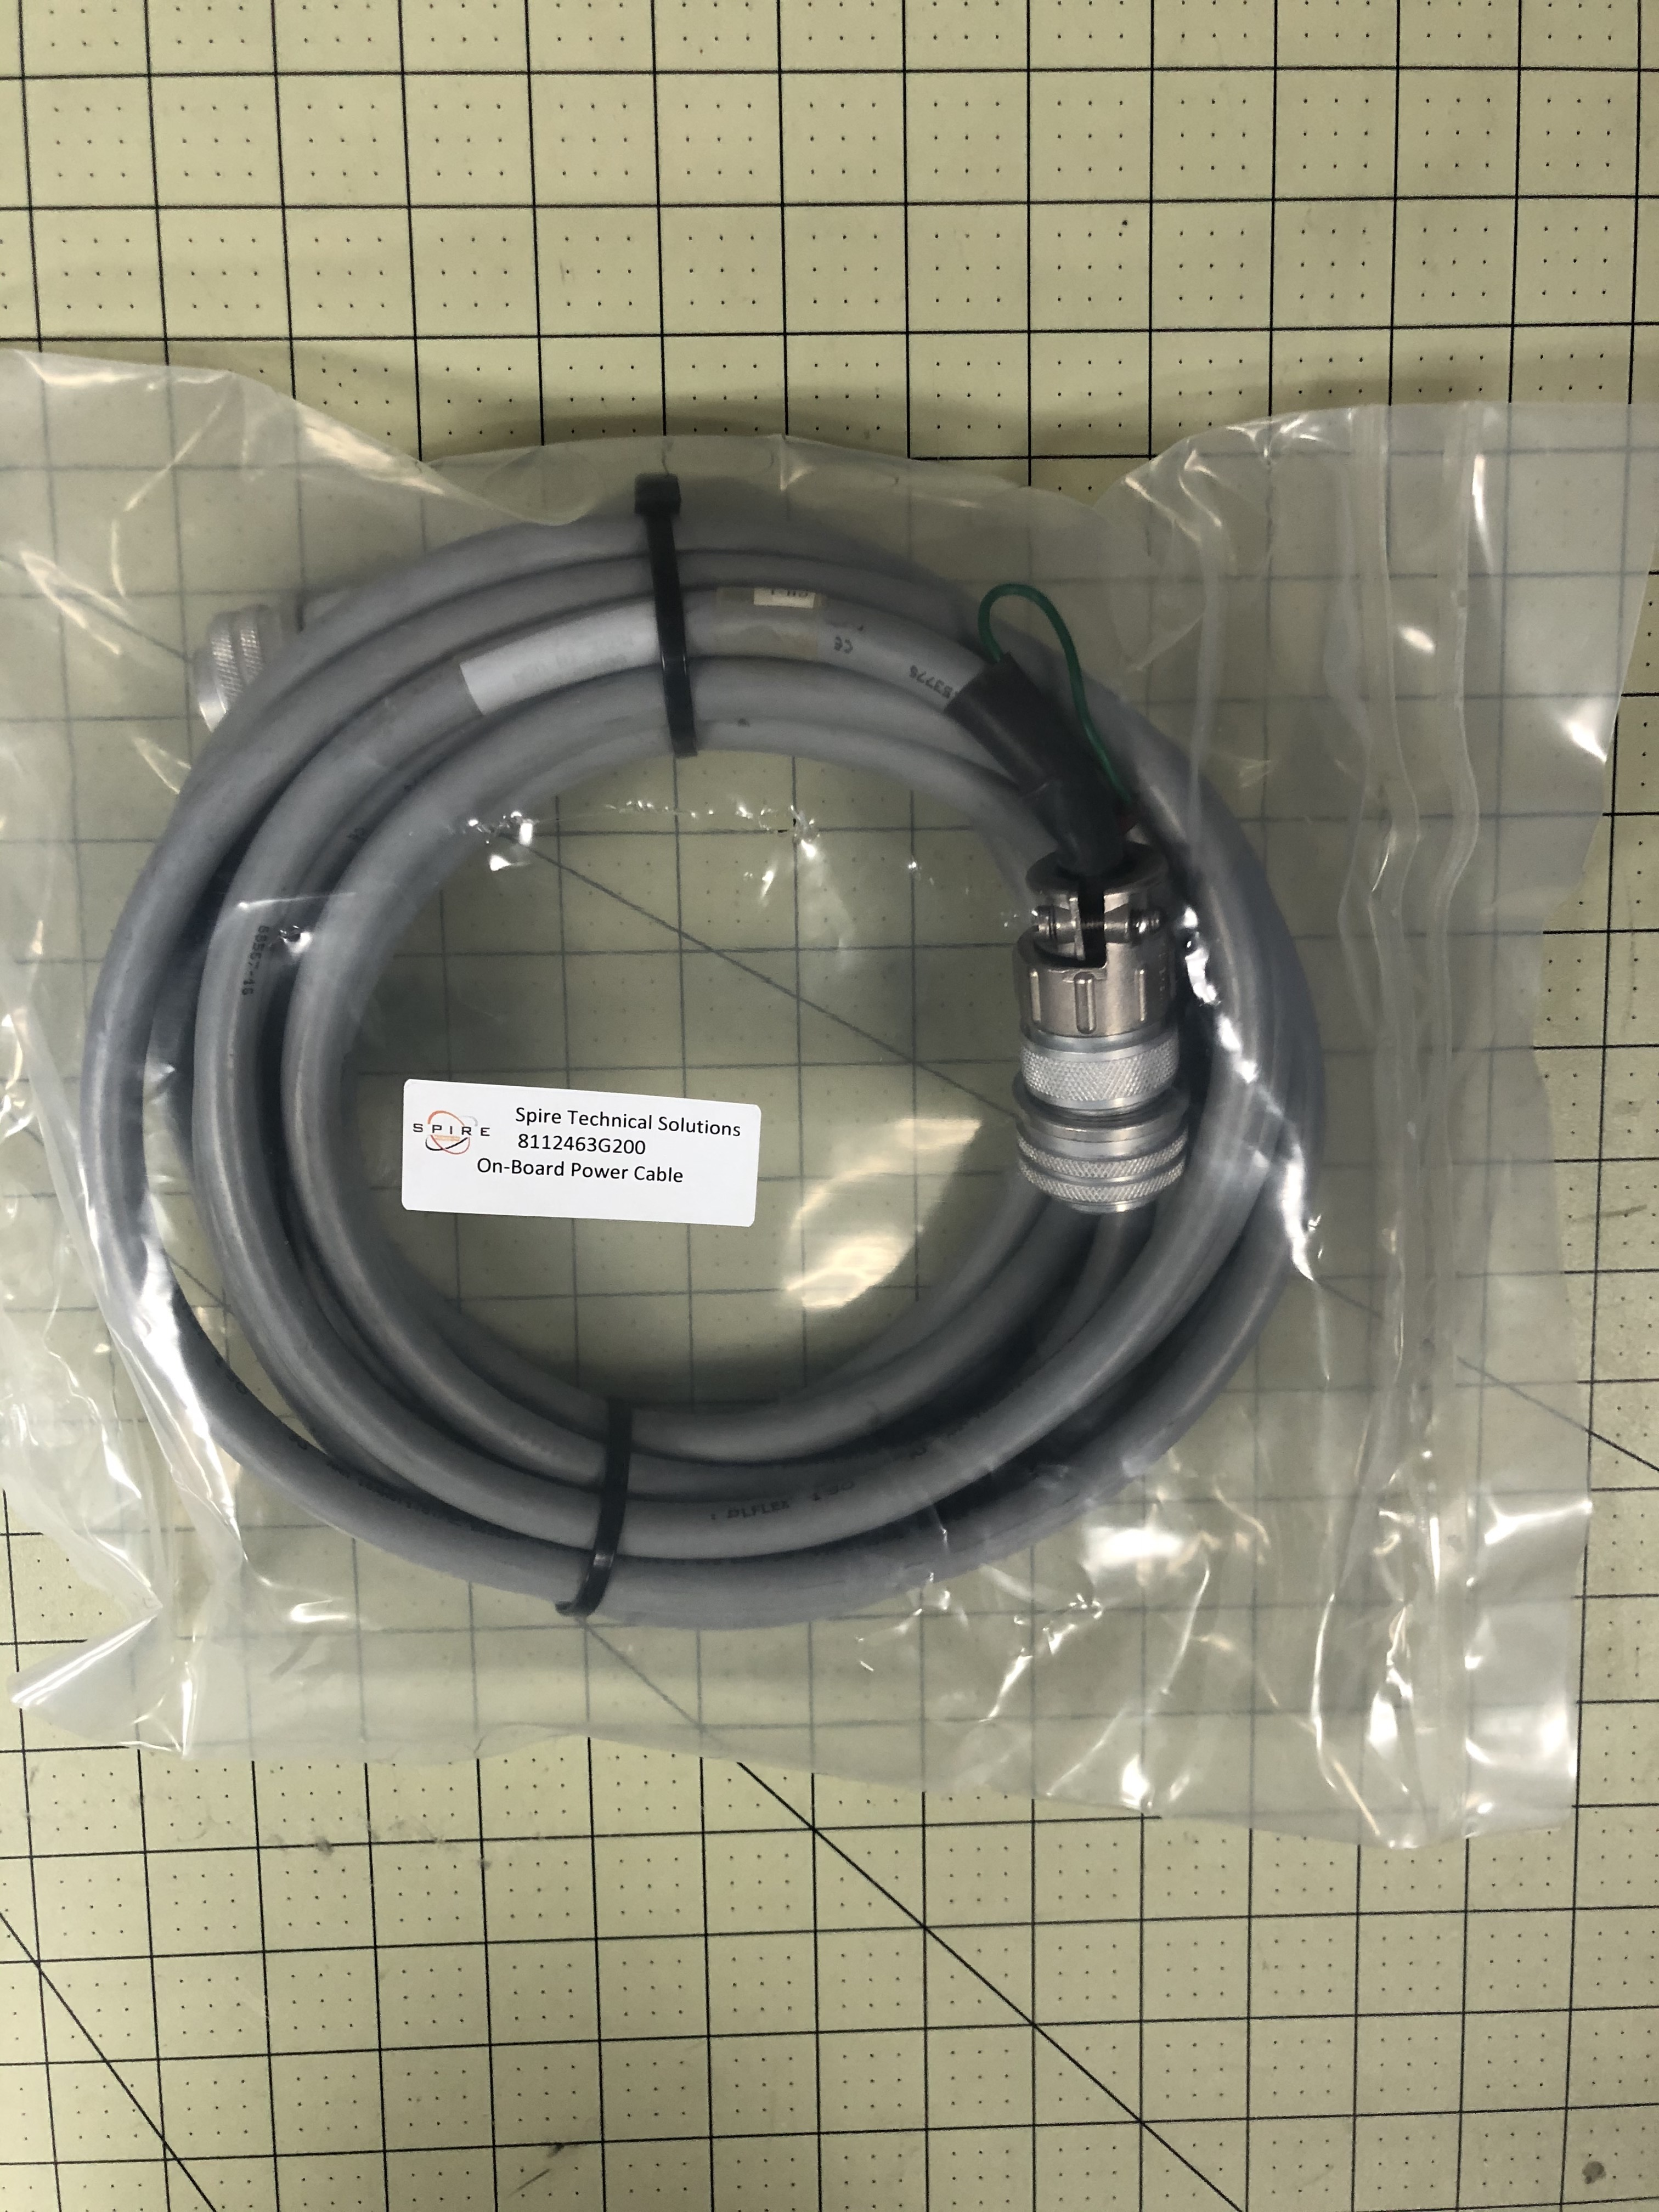 On-Board Power Cable